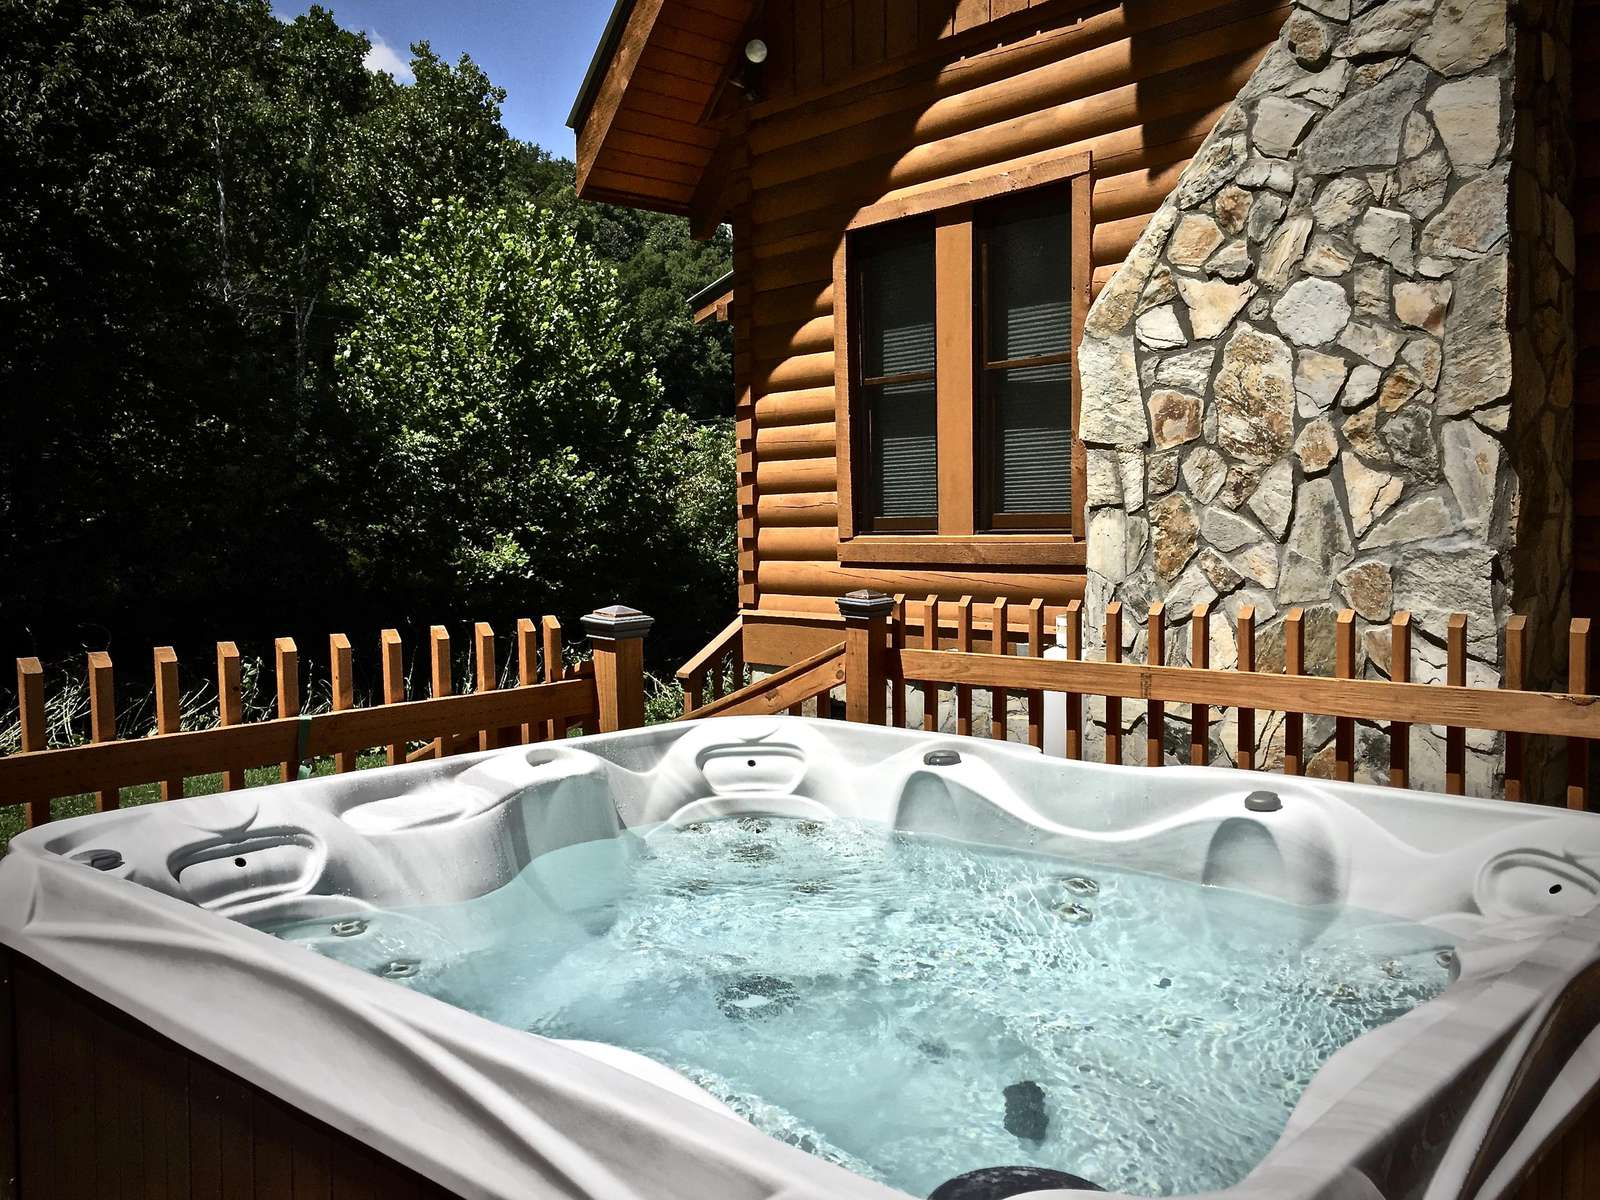 Sparkling Hot Tub awaits...